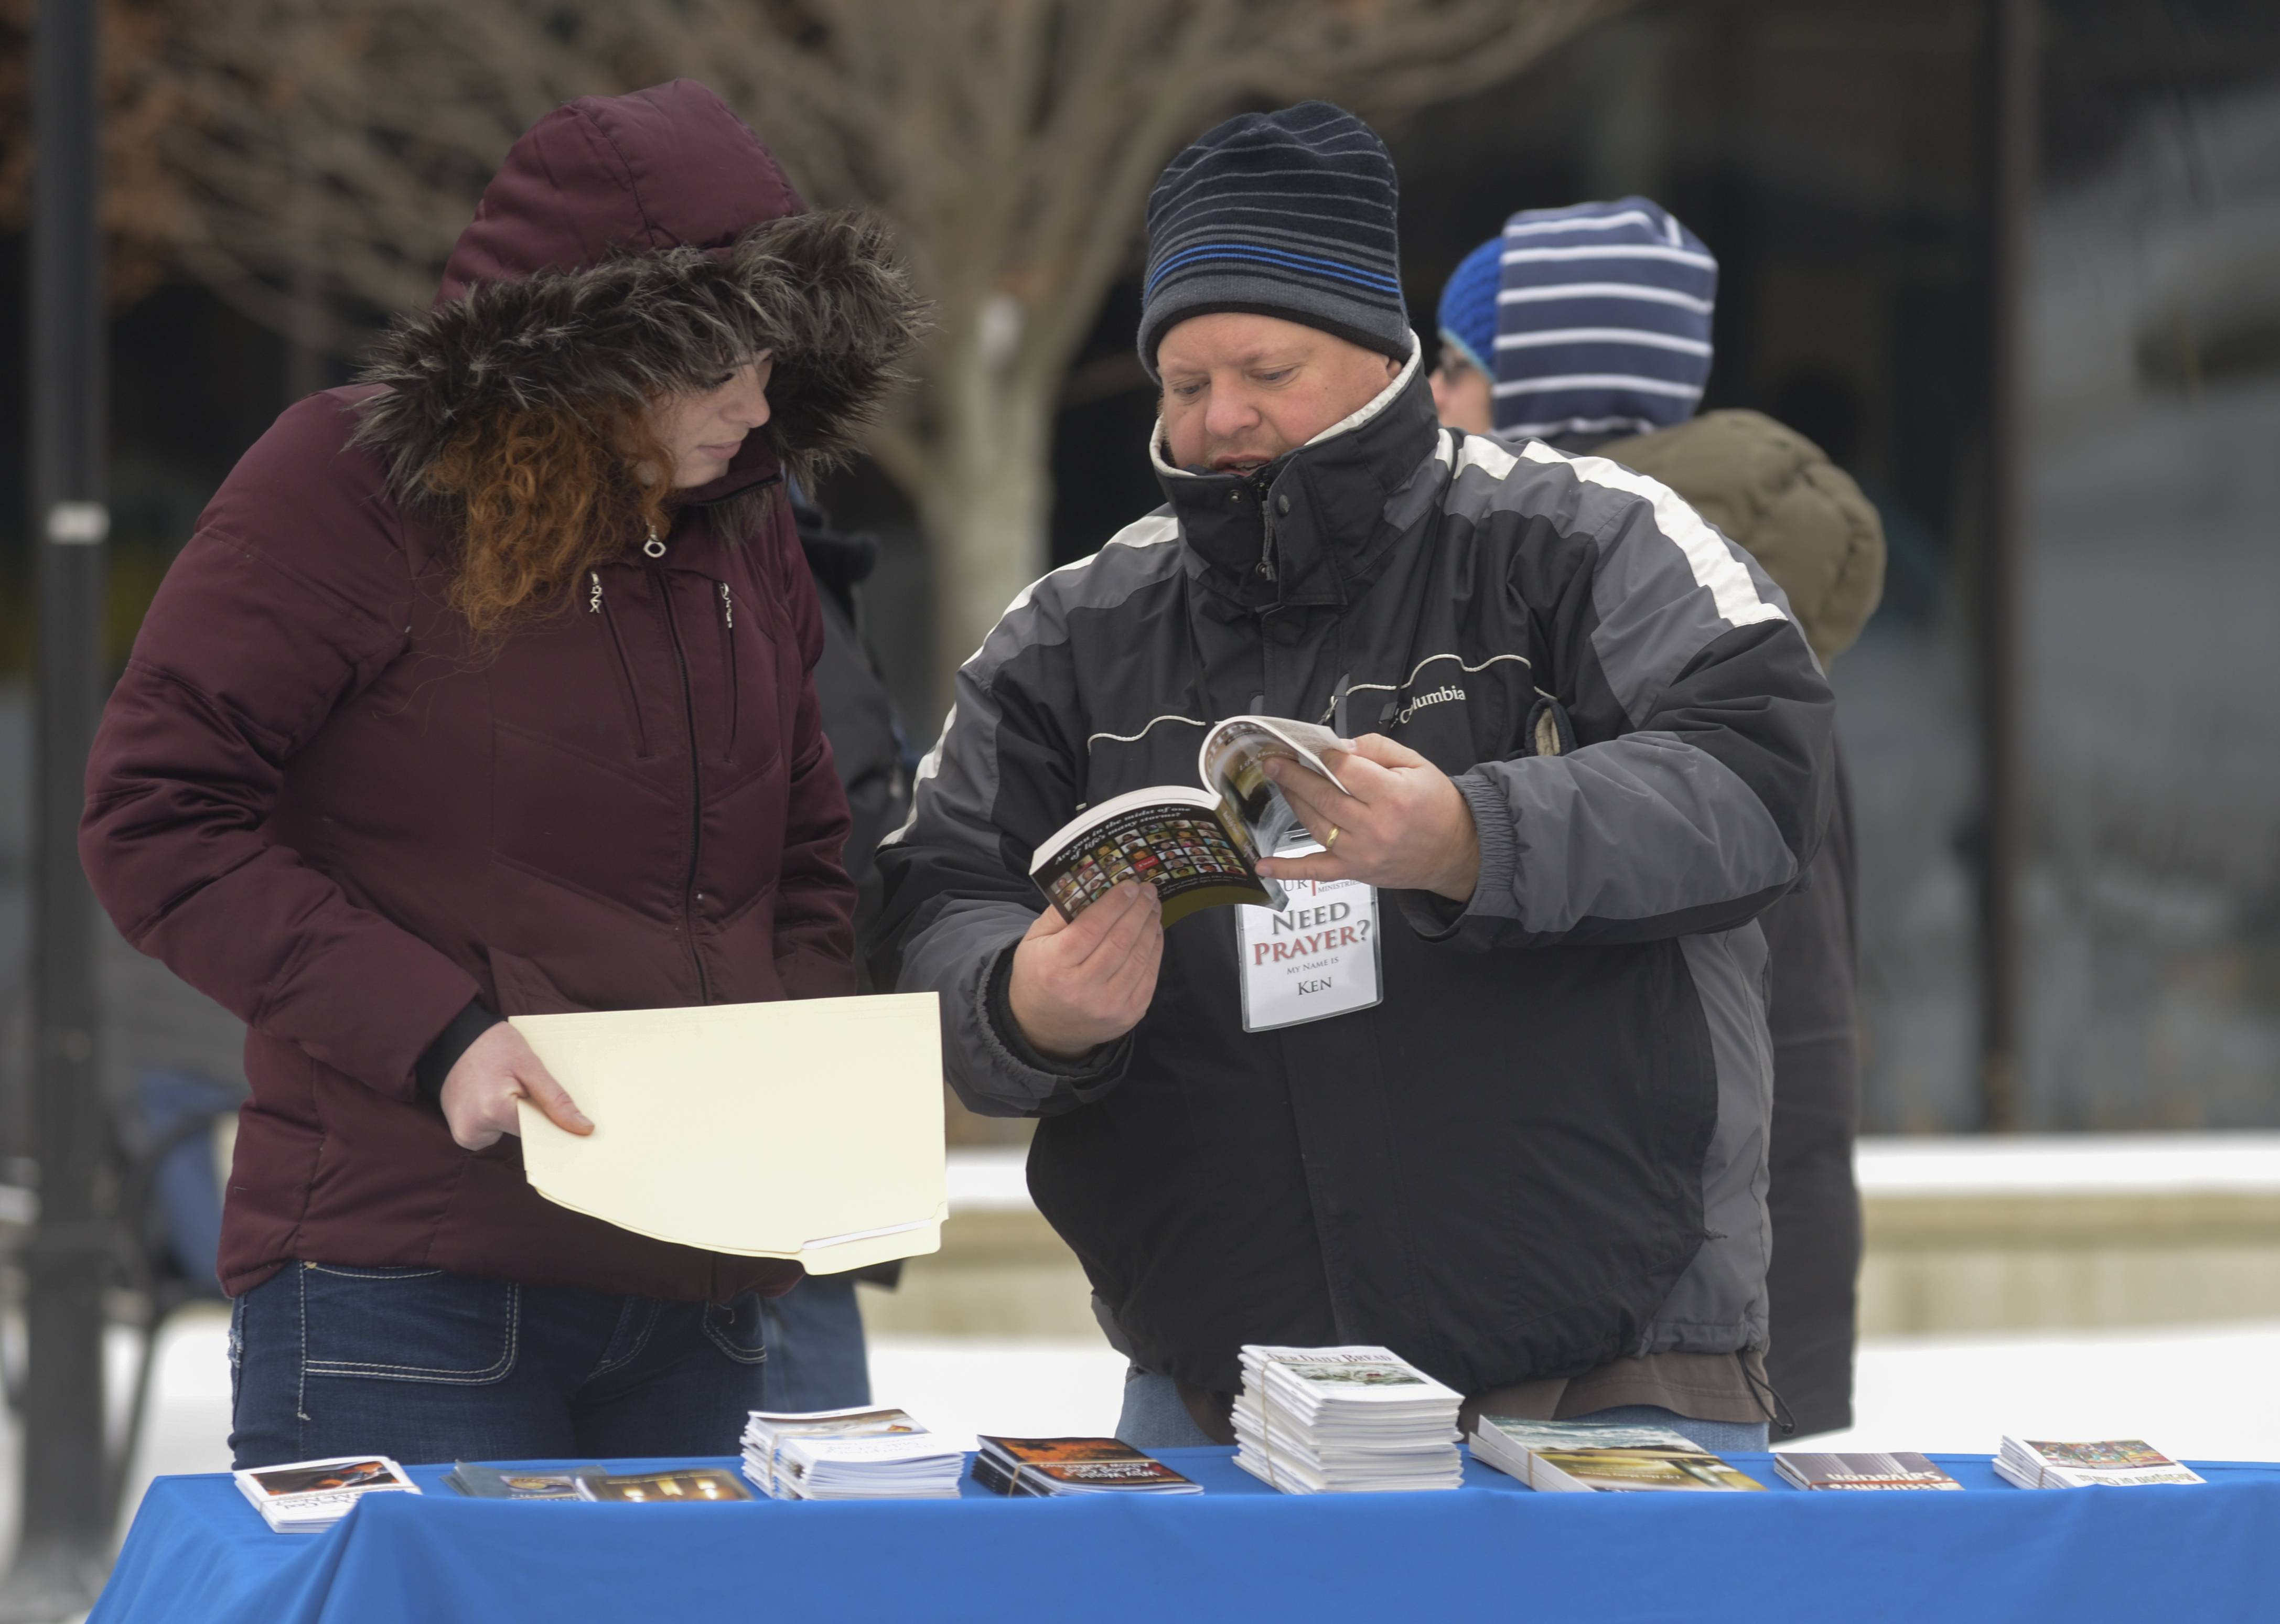 Sara Merritt of Naperville looks over some of the reading material with Courtside Ministries volunteer Ken Schrock of Addison, outside the DuPage County courthouse.